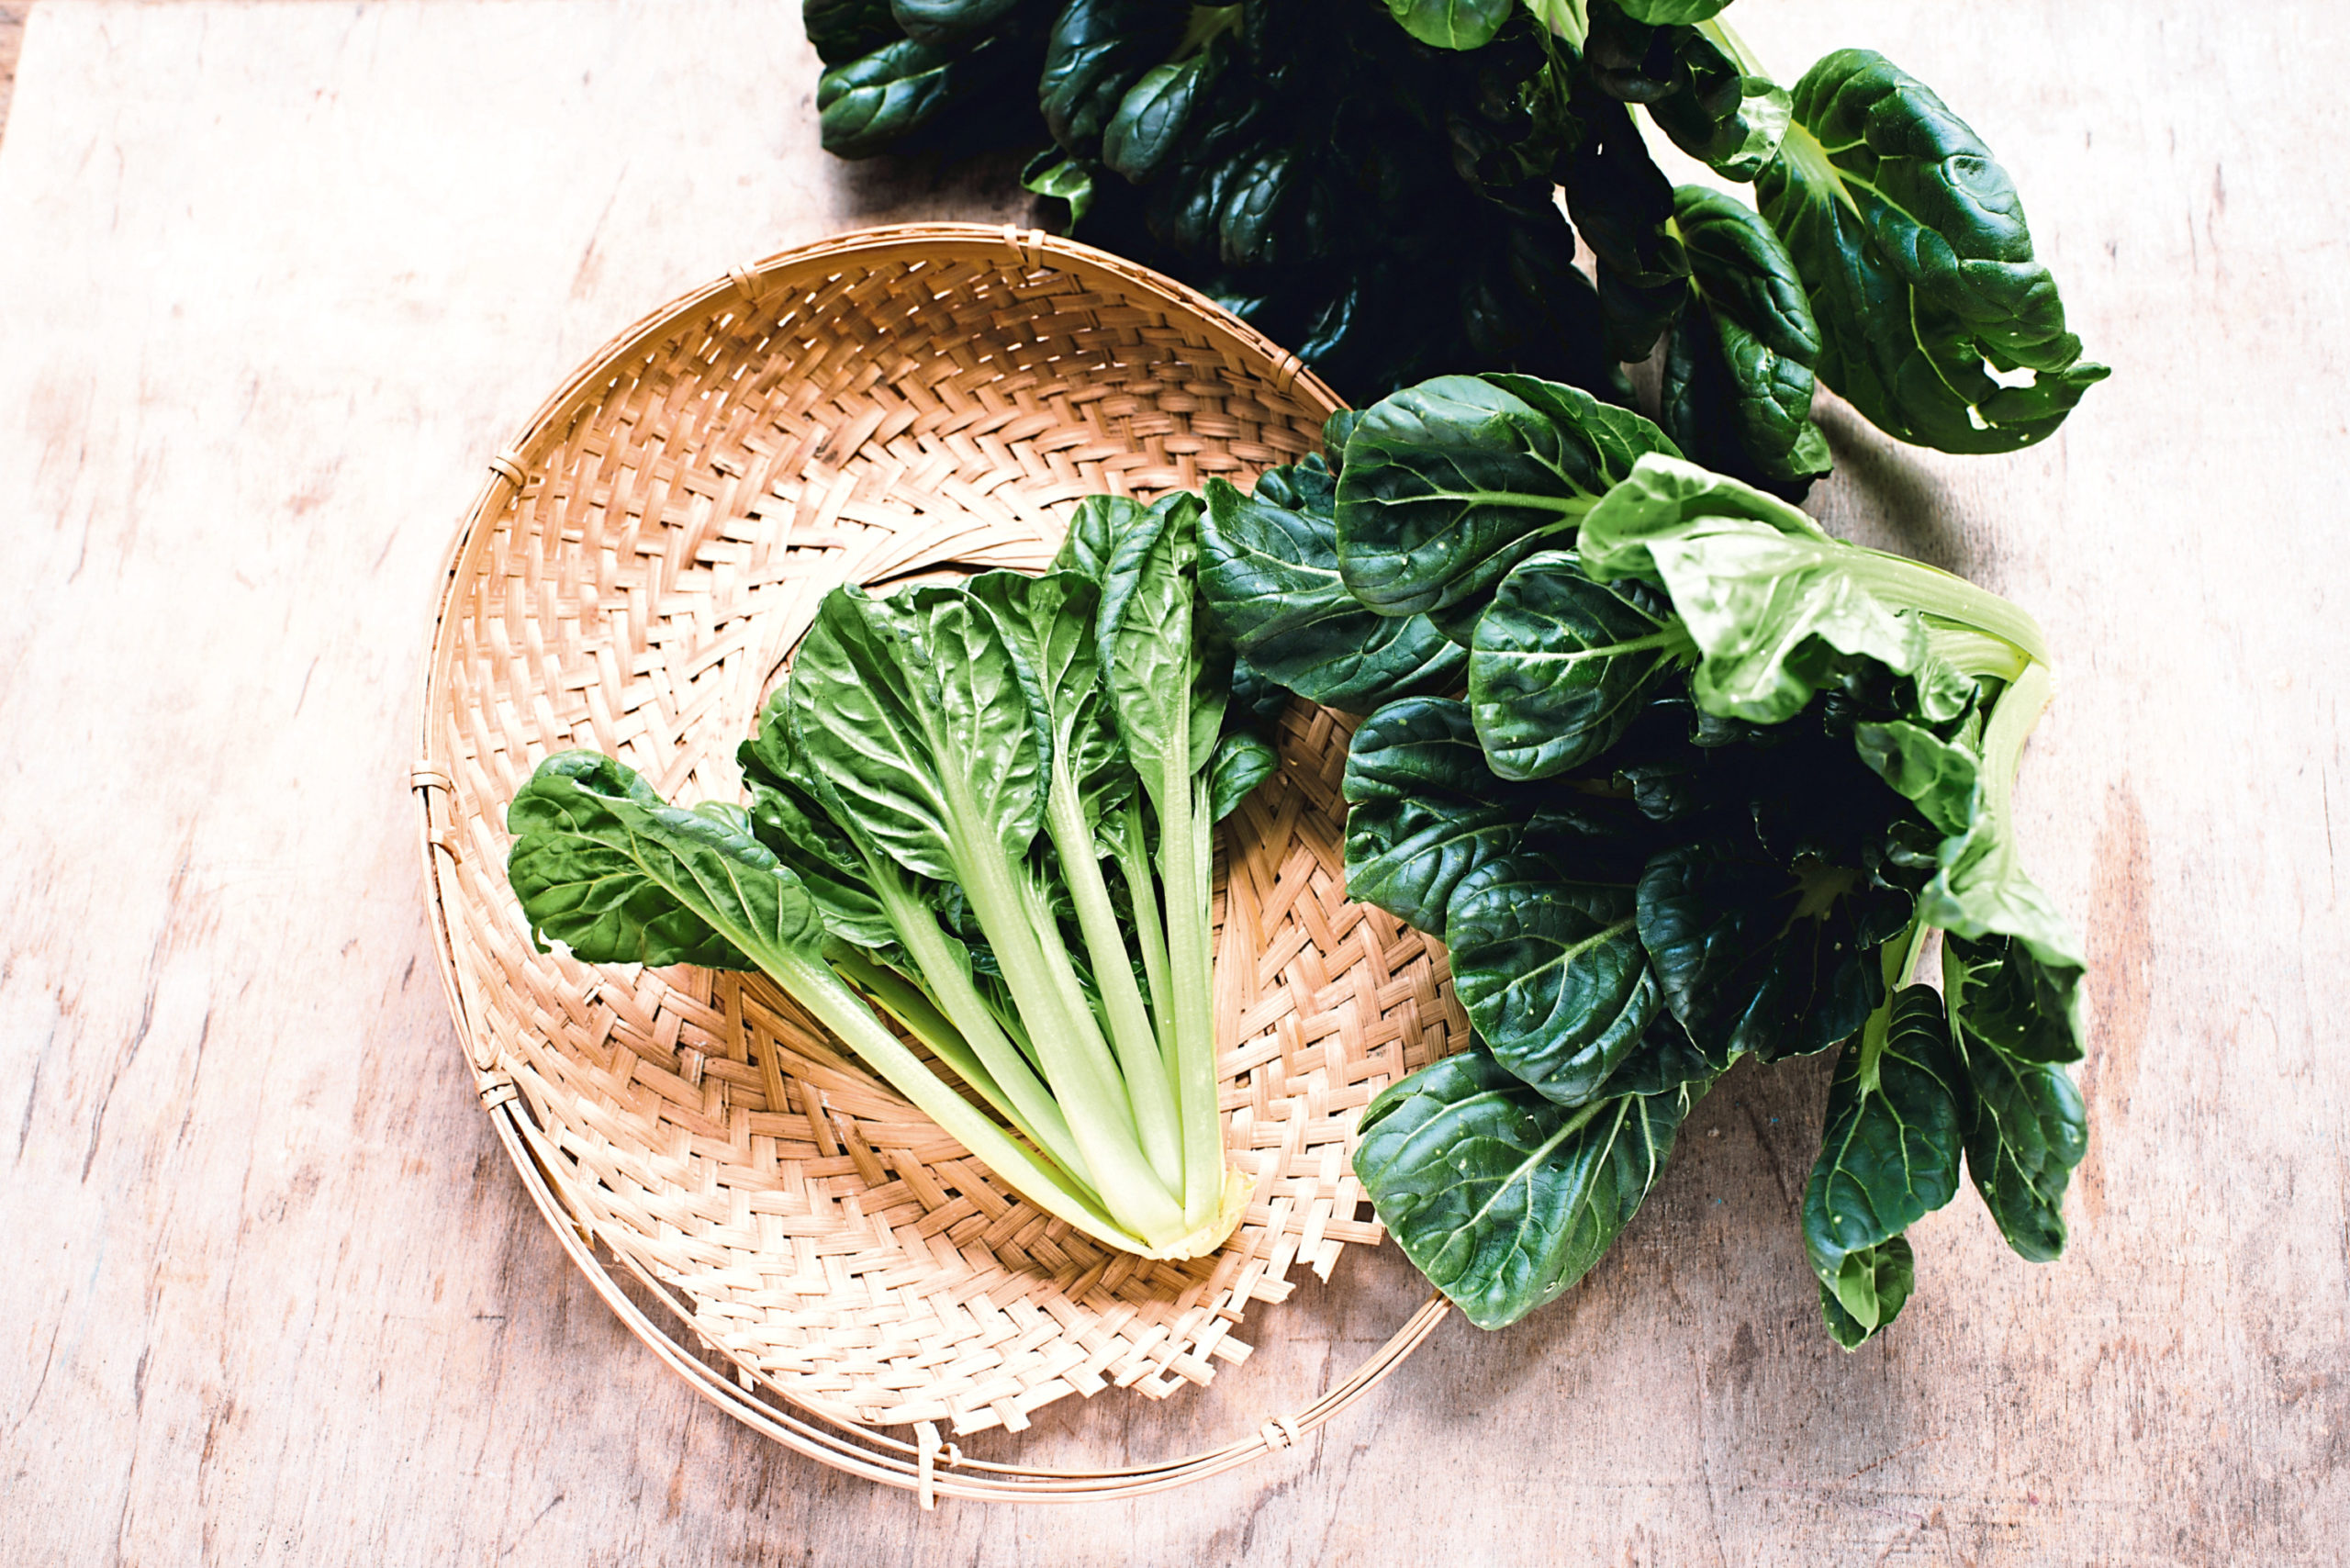 Pak choi is quite easy to grow in Scotland